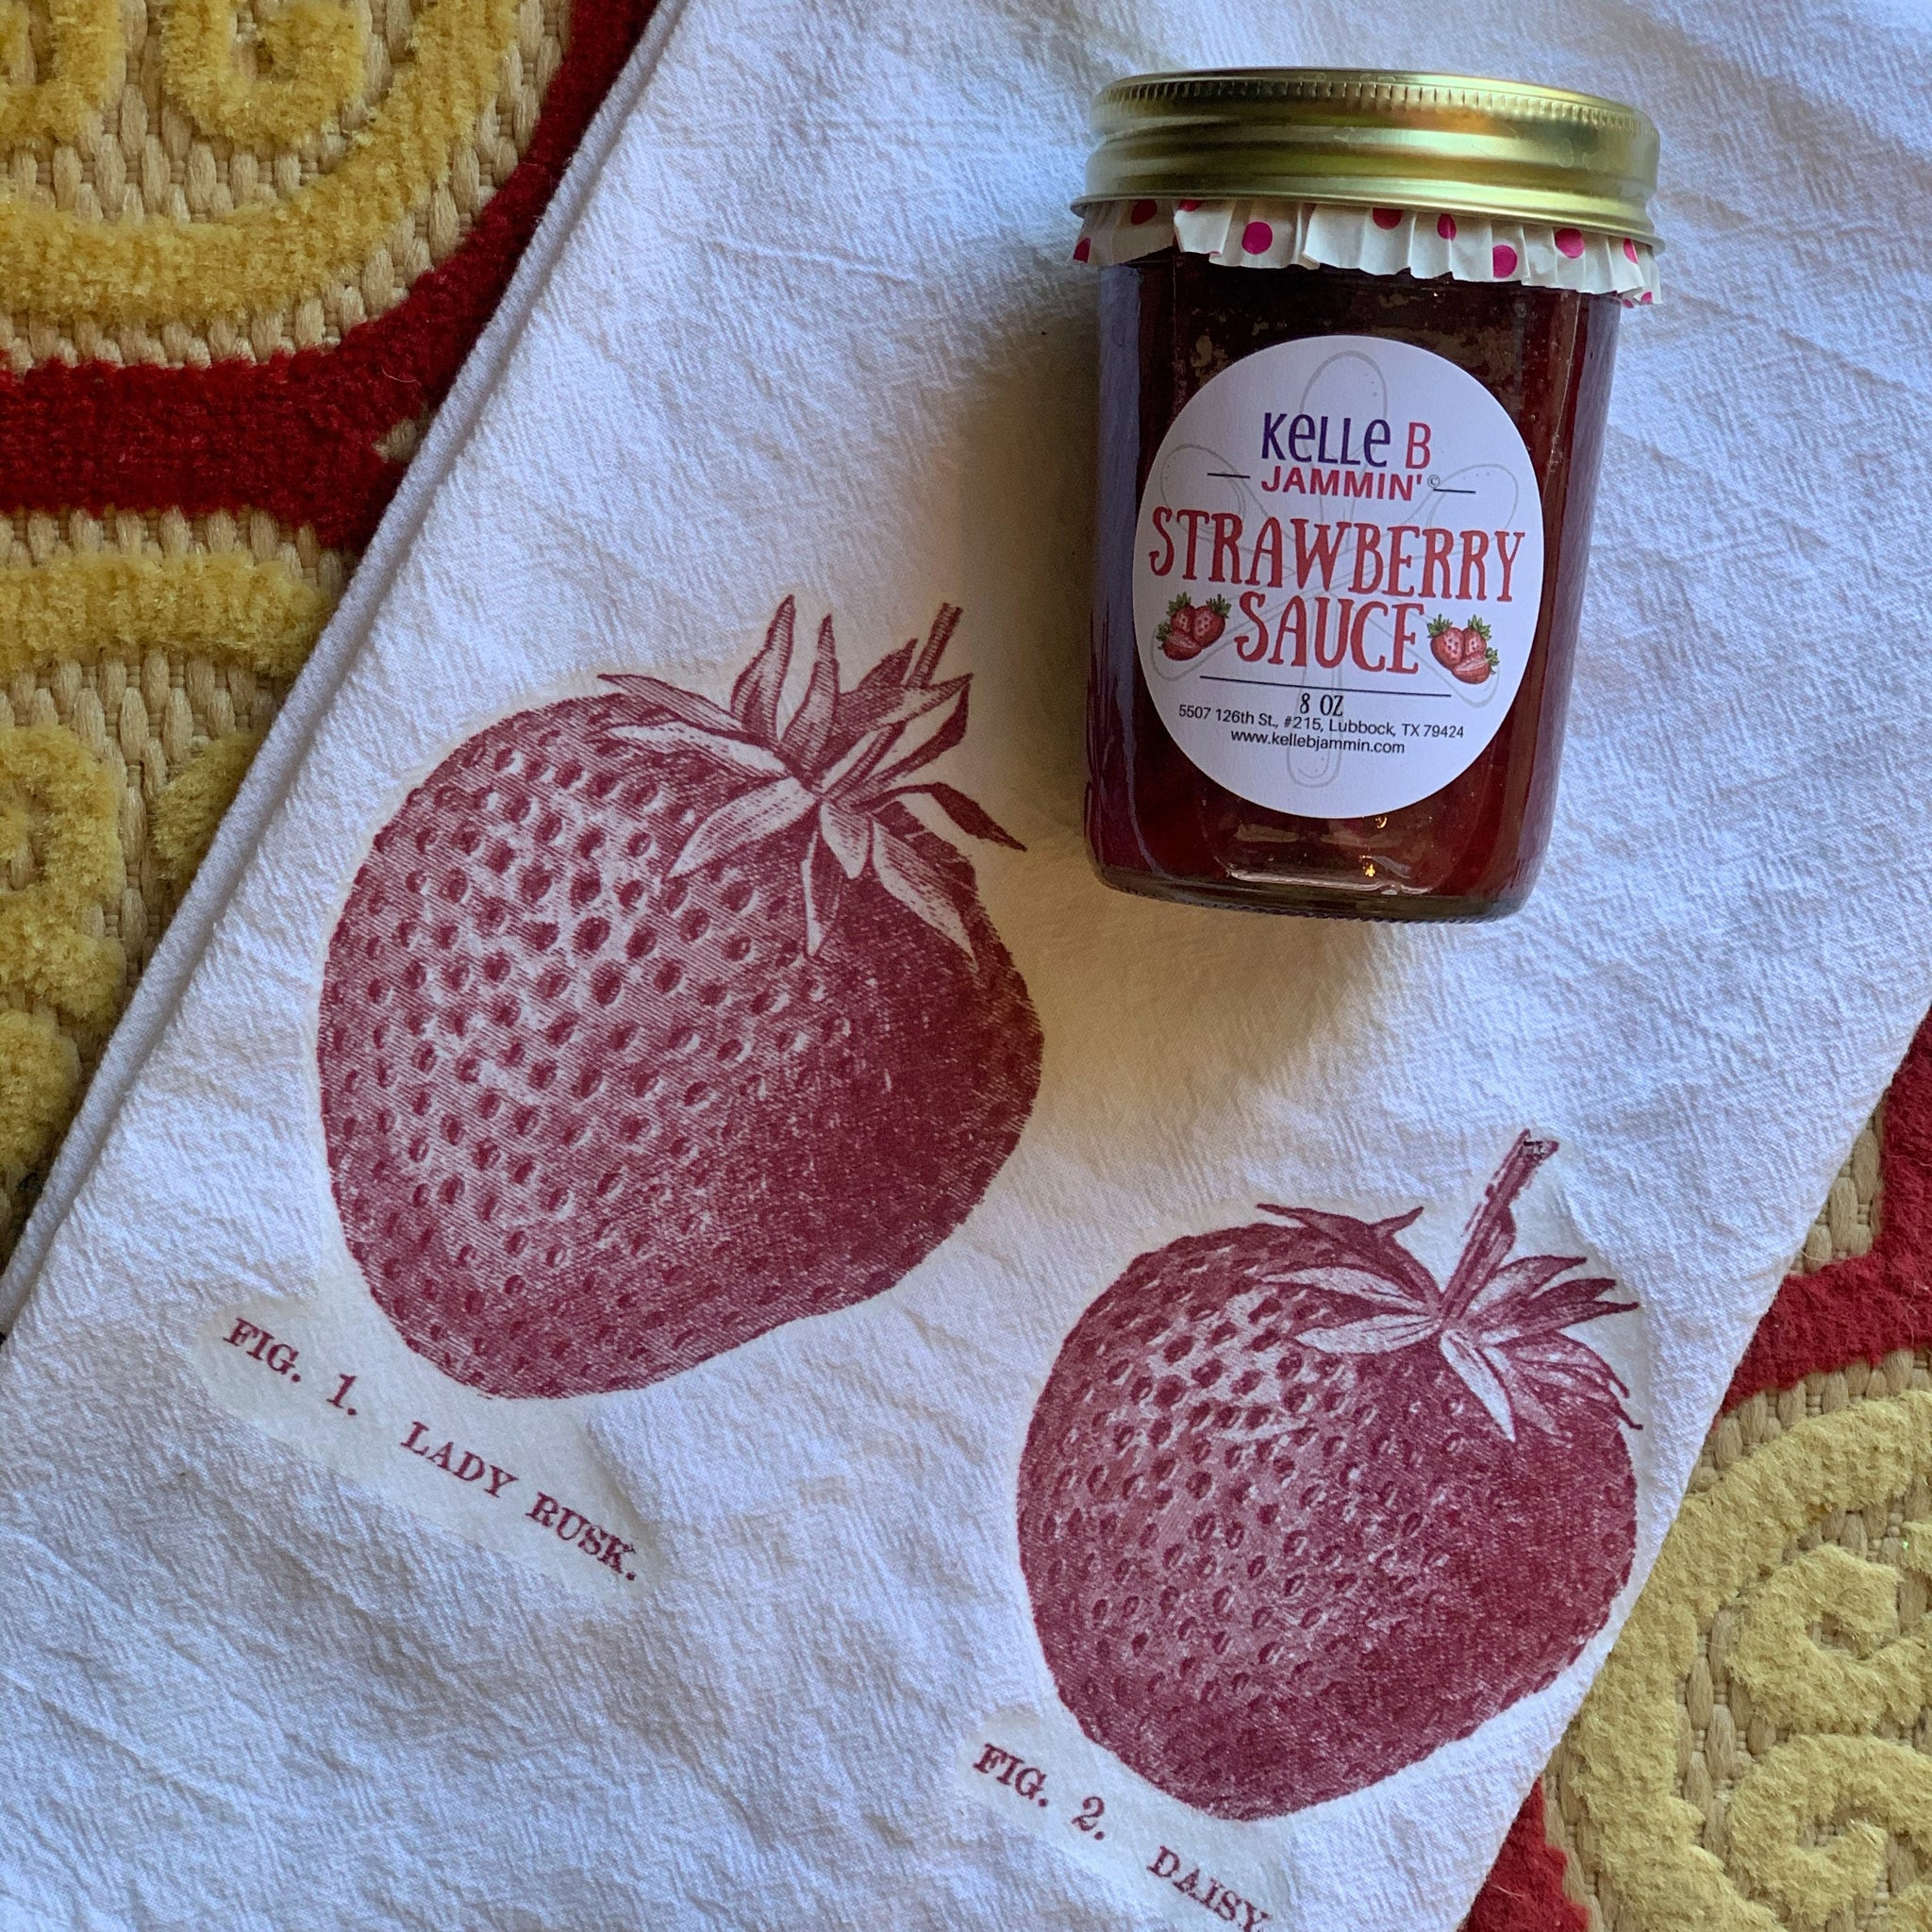 Kelle B's Strawberry Sauce